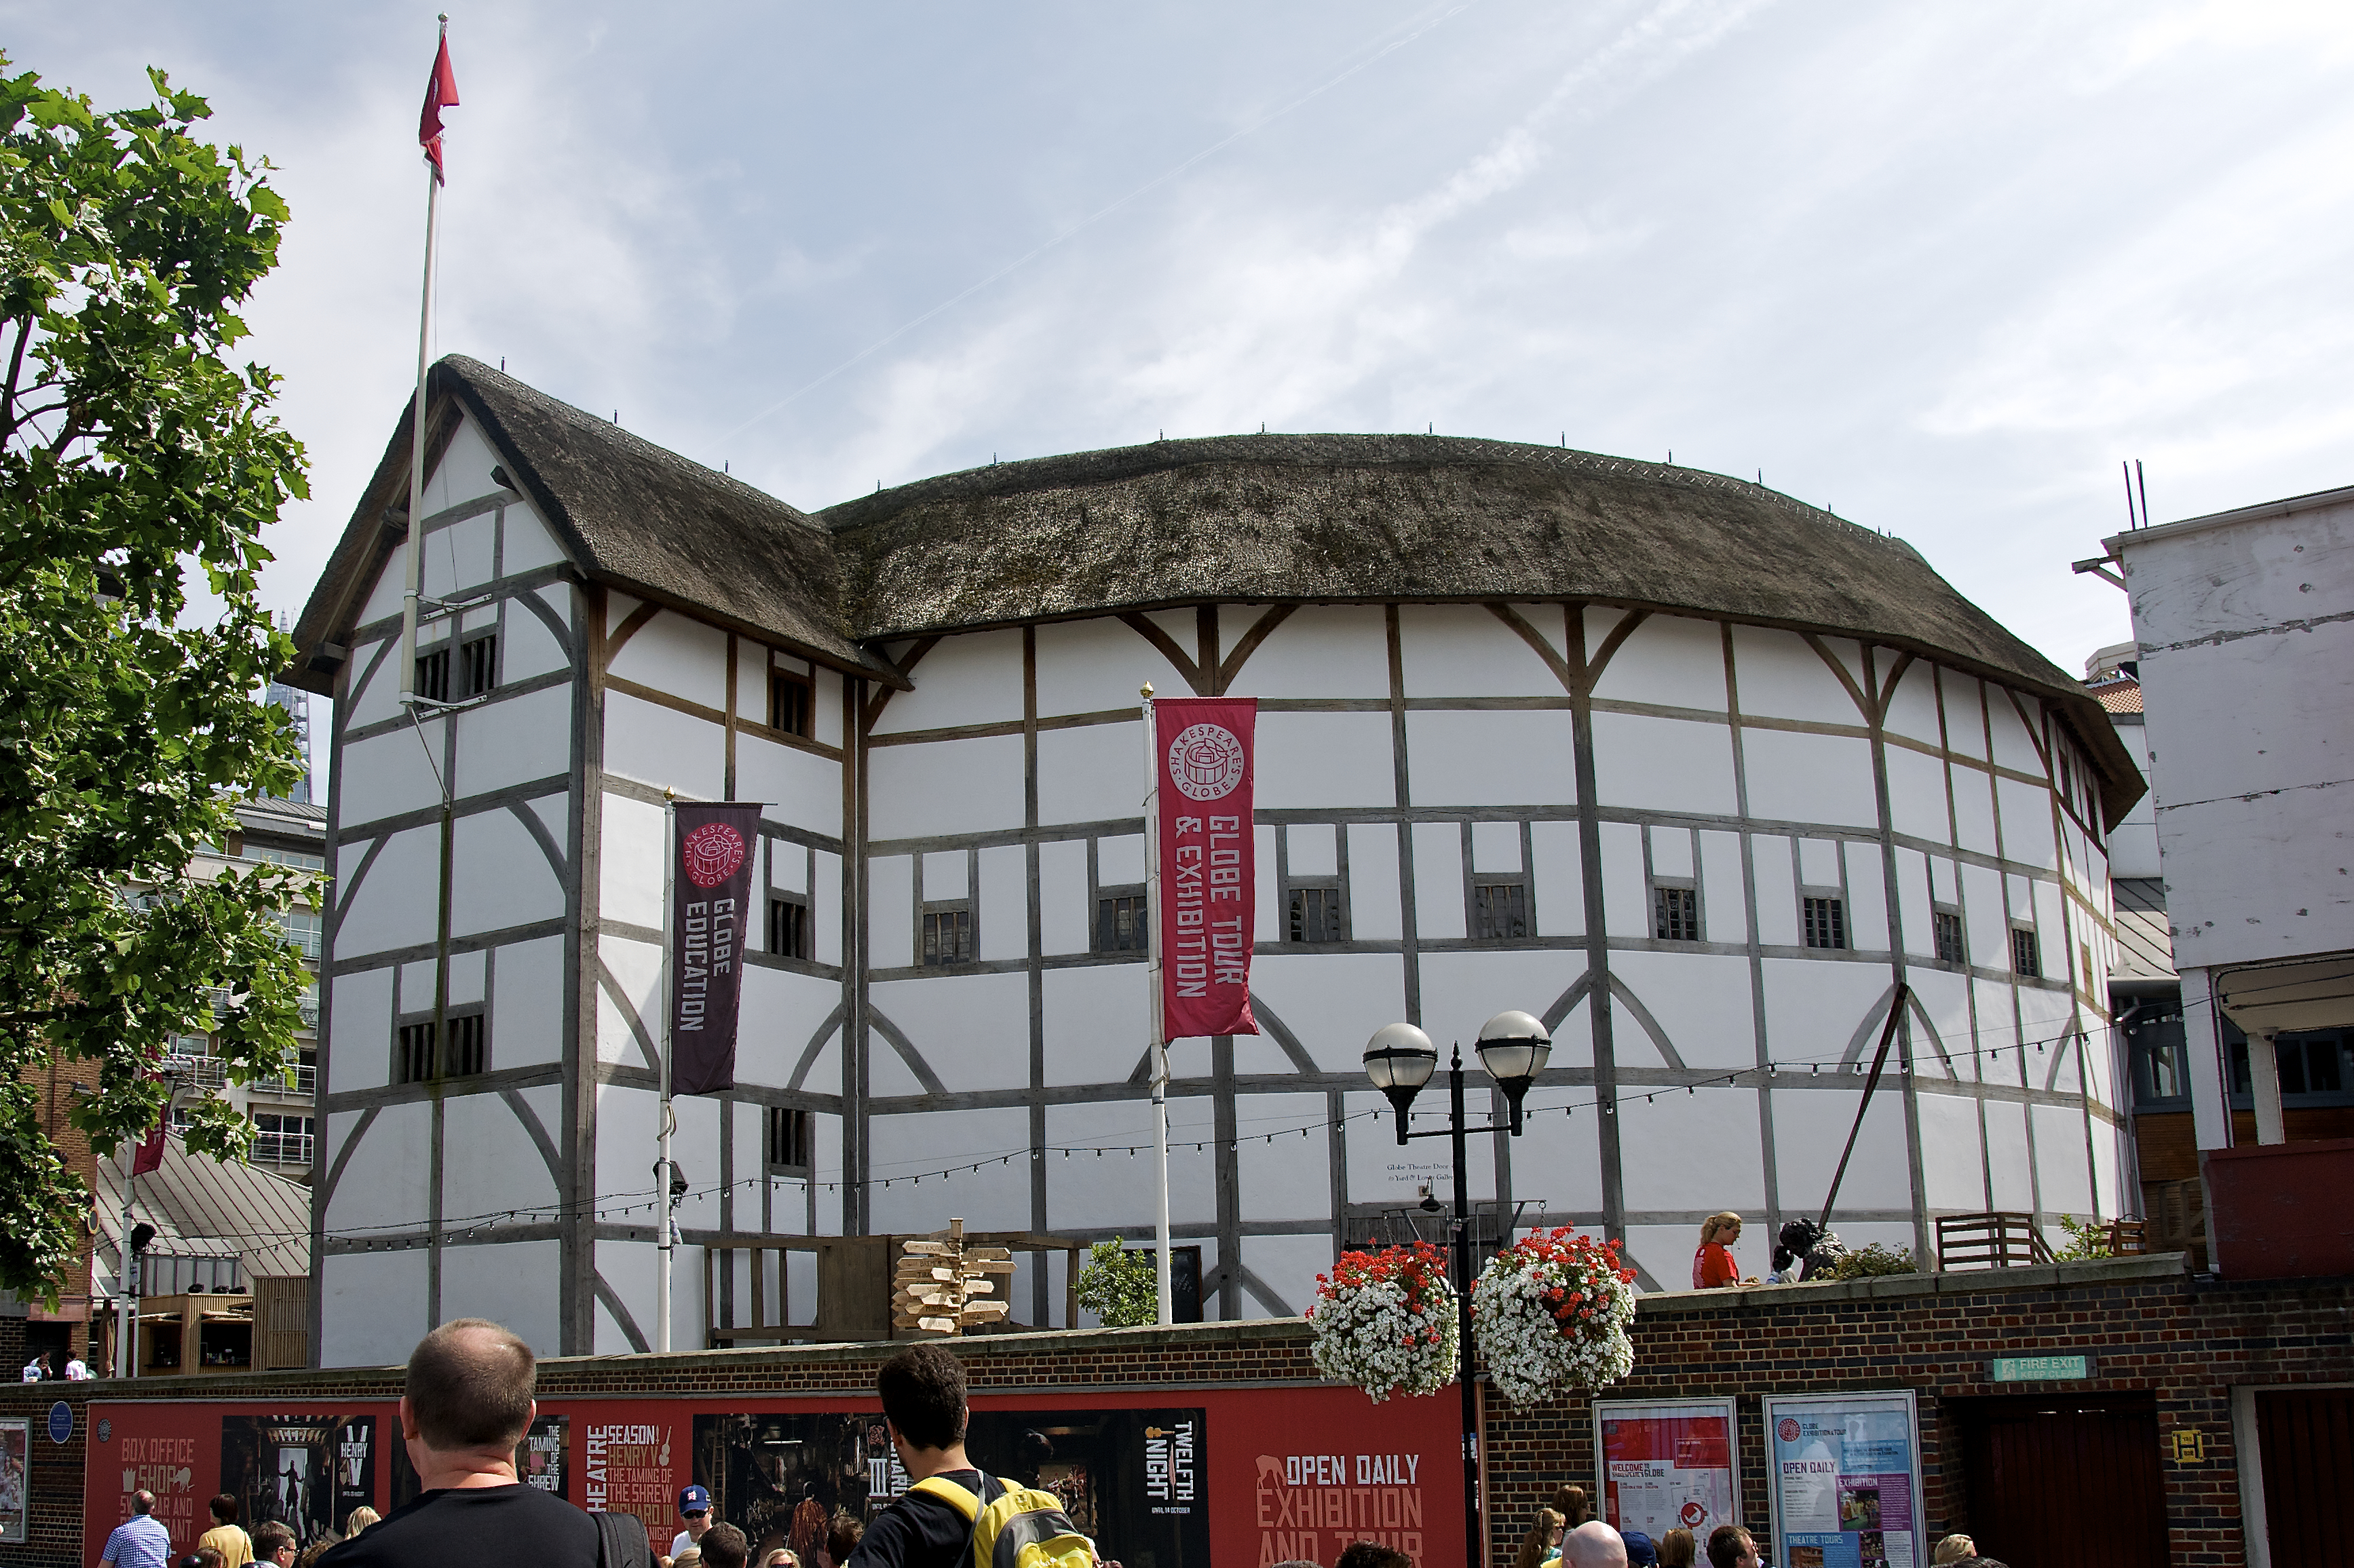 Shakespeare's Globe Theatre, London: Hours, Address, Shakespeare's Globe Theatre Reviews: 5/5